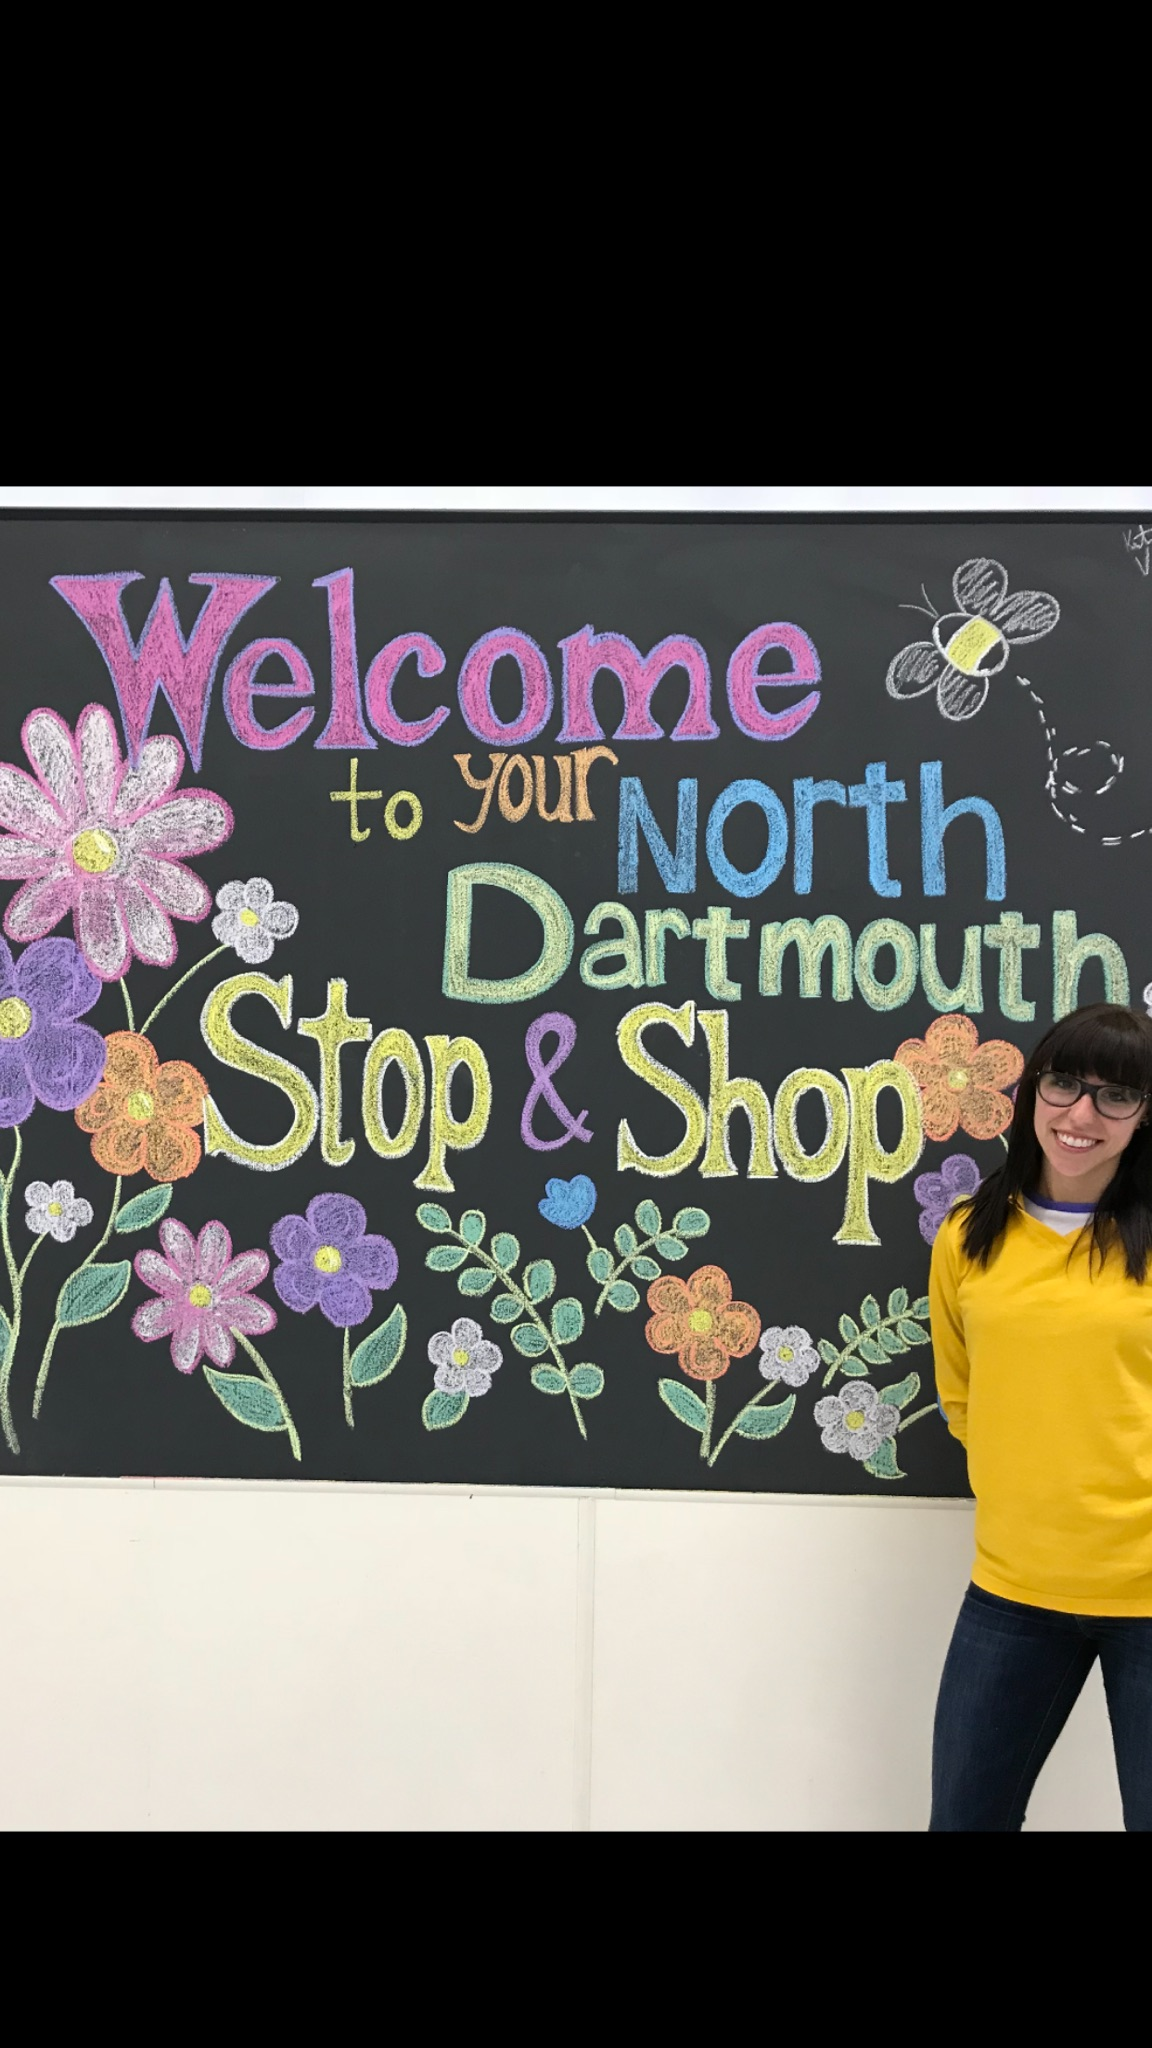 Kristen Is Our Cake Decorator In Store 493. You Can Tell By Her Great Talent That She Loves Art. Kristen Did This Beautiful Mural To Welcome Our Customers Into Our Store And All The Customers Love It. She Has Been With Stop & Shop For 11 Years. Great Job Kristen!